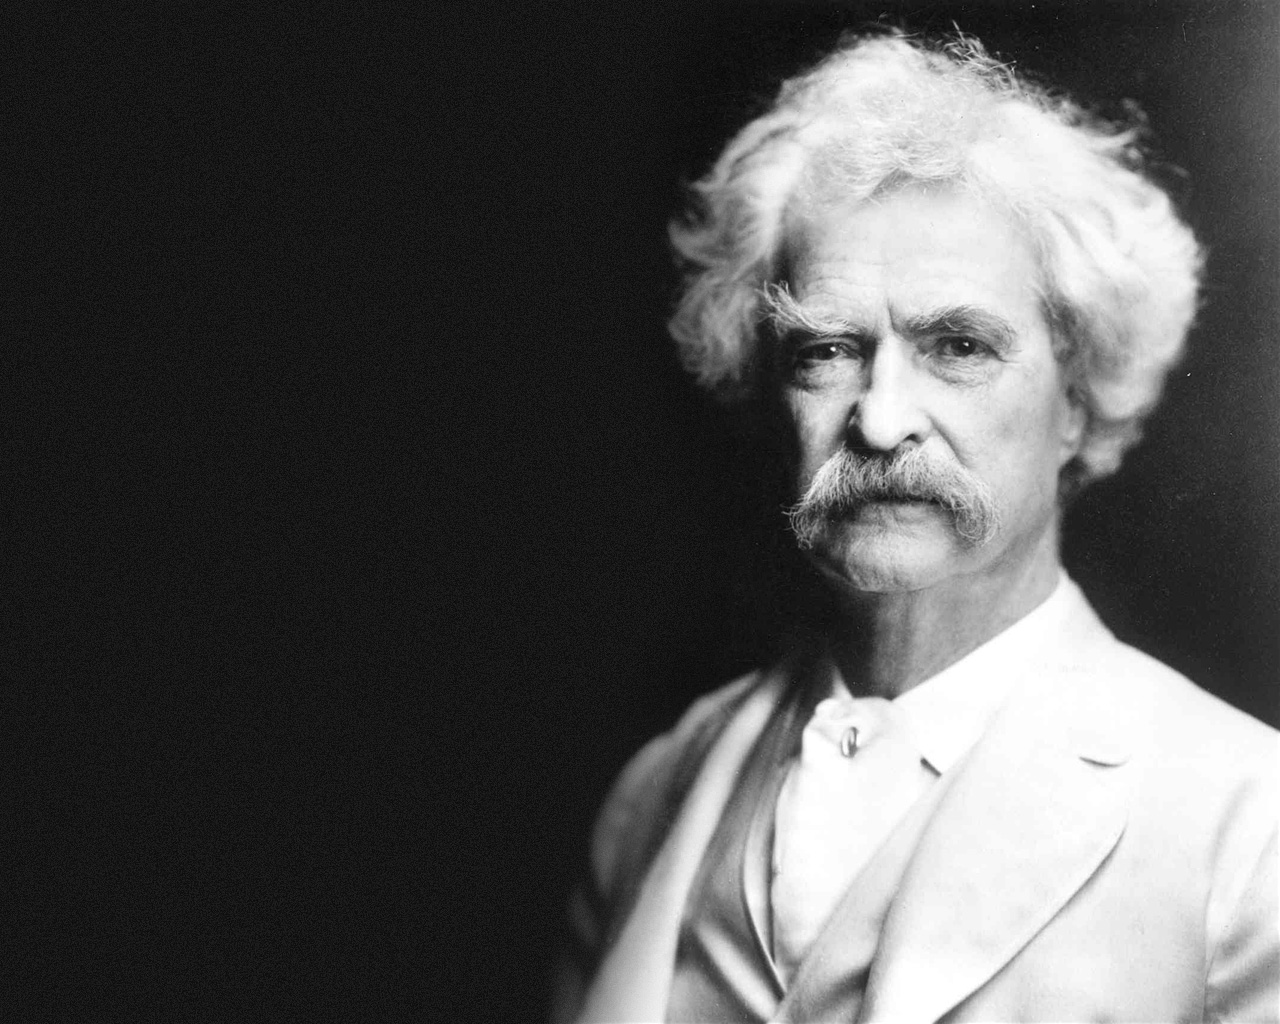 18 Rules for Writing by Mark Twain